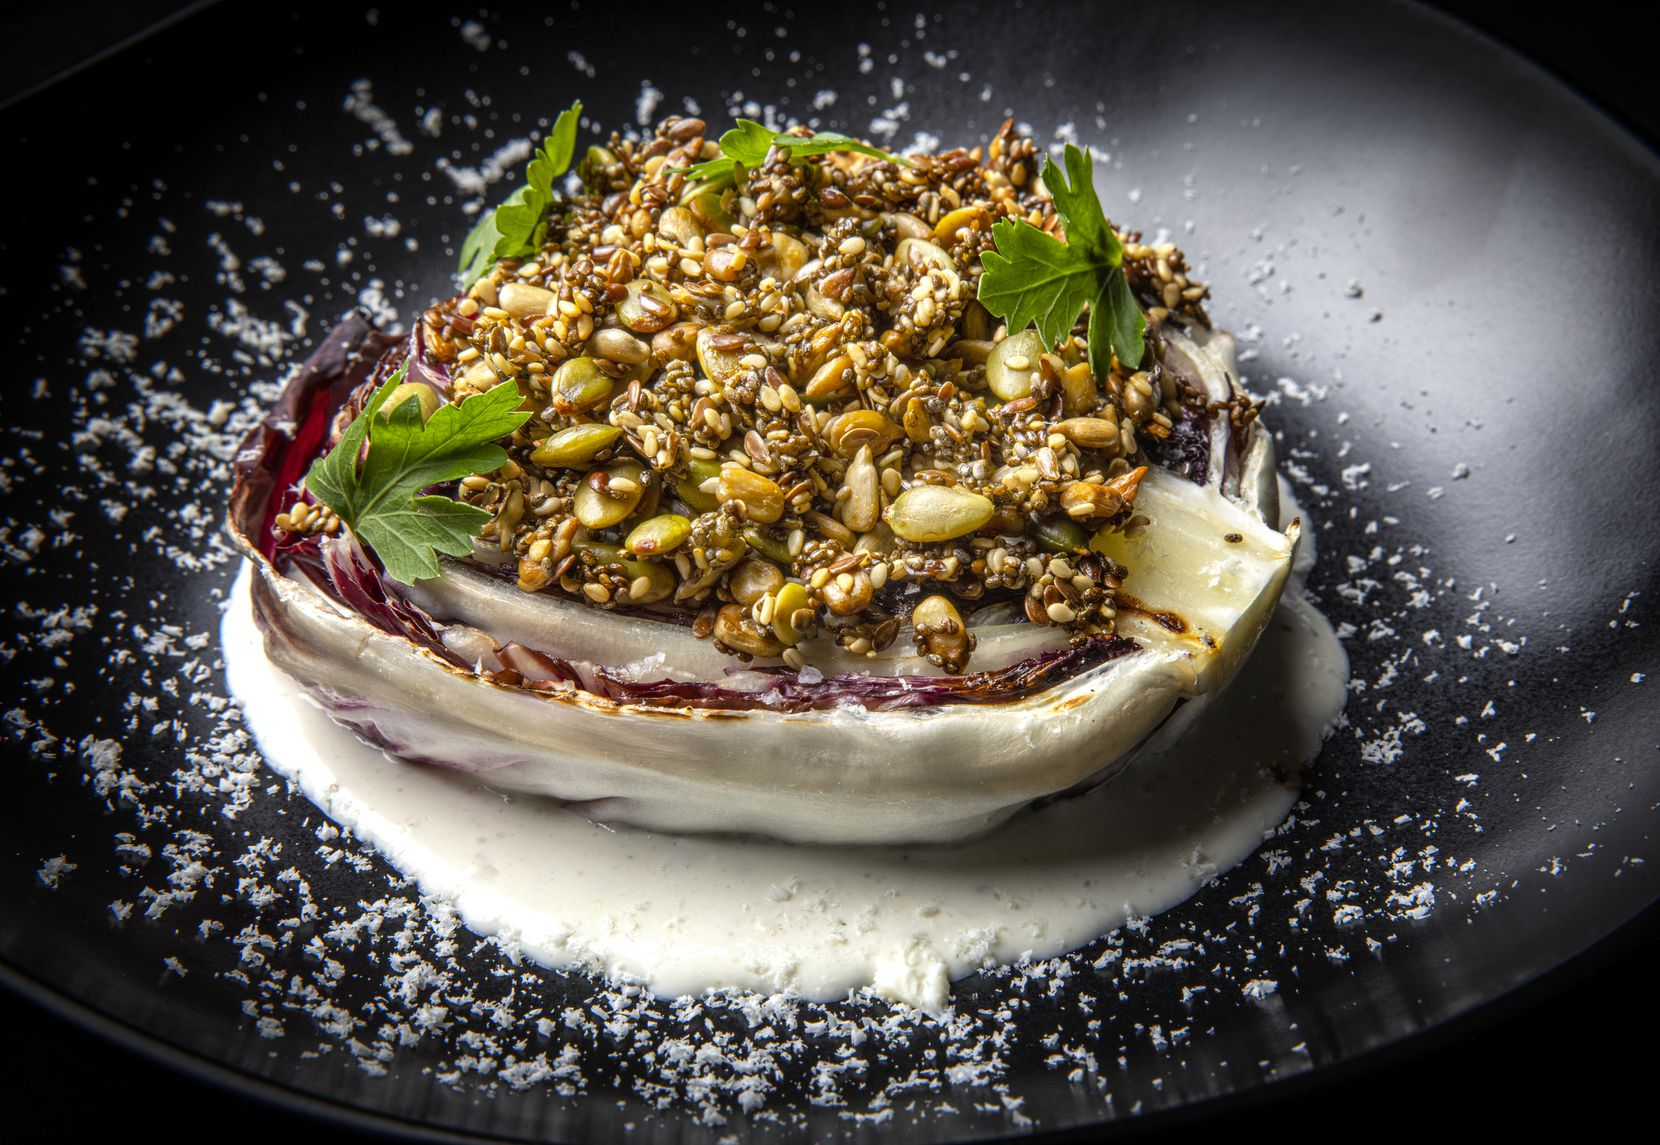 Charred Radicchio With Gorgonzola and Seedy Love Sprinkle from Rancho Loma